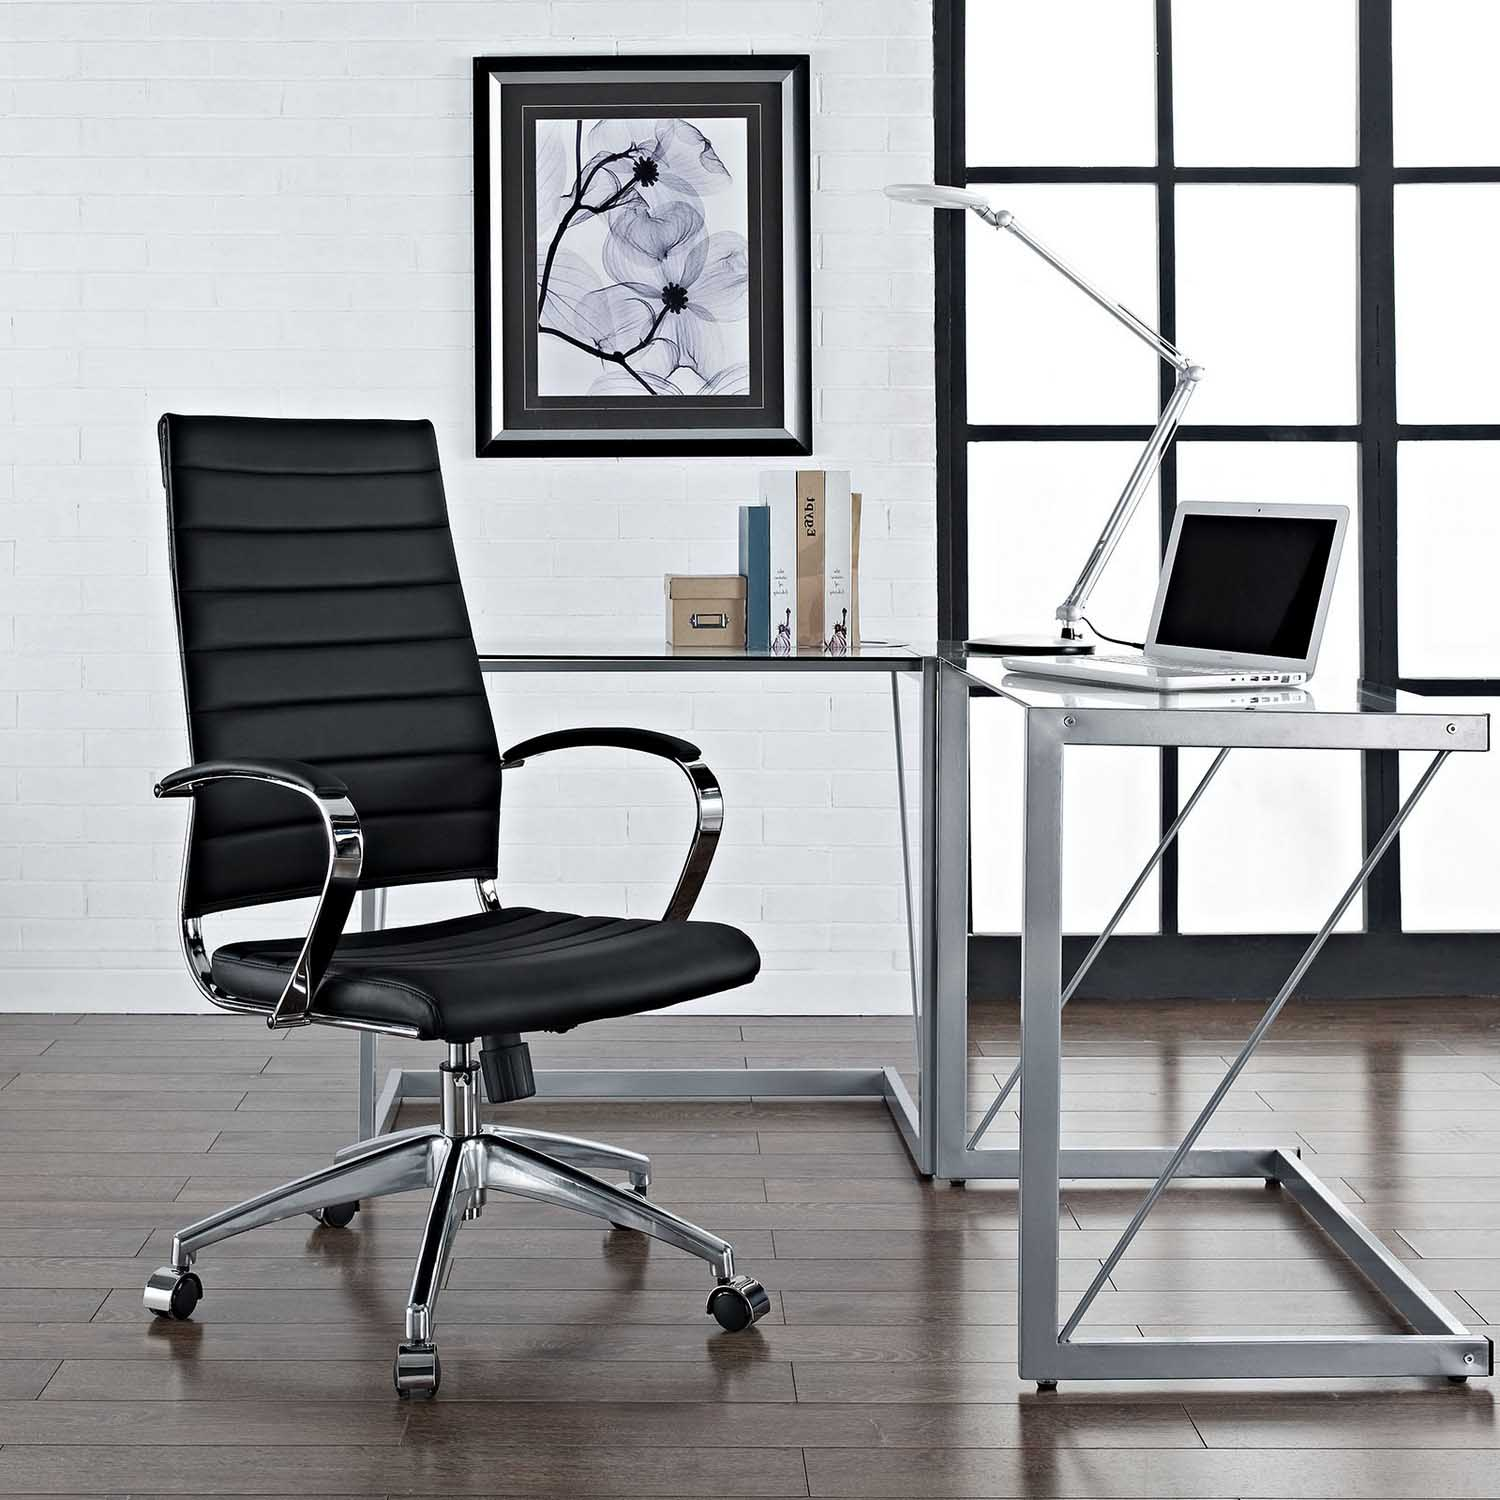 Modway Jive Highback fice Chair Black MW EEI 272 BLK at